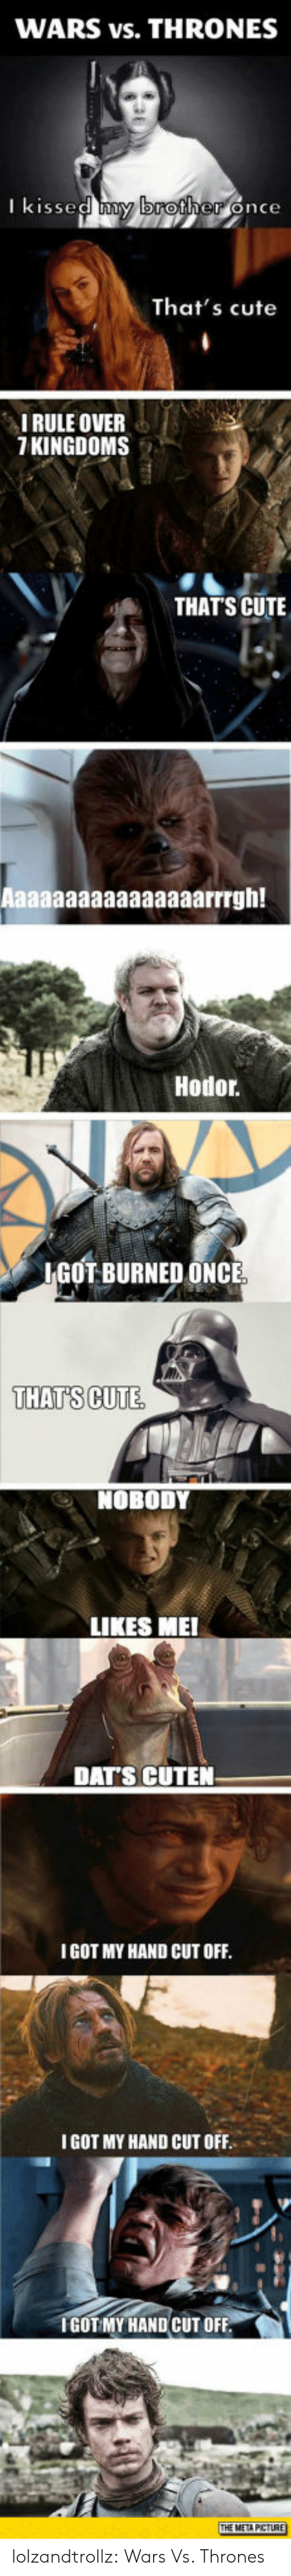 Cute, Tumblr, and Blog: WARS vs. THRONES  I kissed y broher once  That's cute  IRULE OVER  7 KINGDOMS  THATS CUTE  Hodor  IGOT BURNED ONCE  THATS CUTE  NOBODY  LIKES MEI  DATS CUTEN  I GOT MY HAND CUT OFF  IGOT MY HAND CUT OFF  IGOT MY HAND CUT OFF lolzandtrollz:  Wars Vs. Thrones